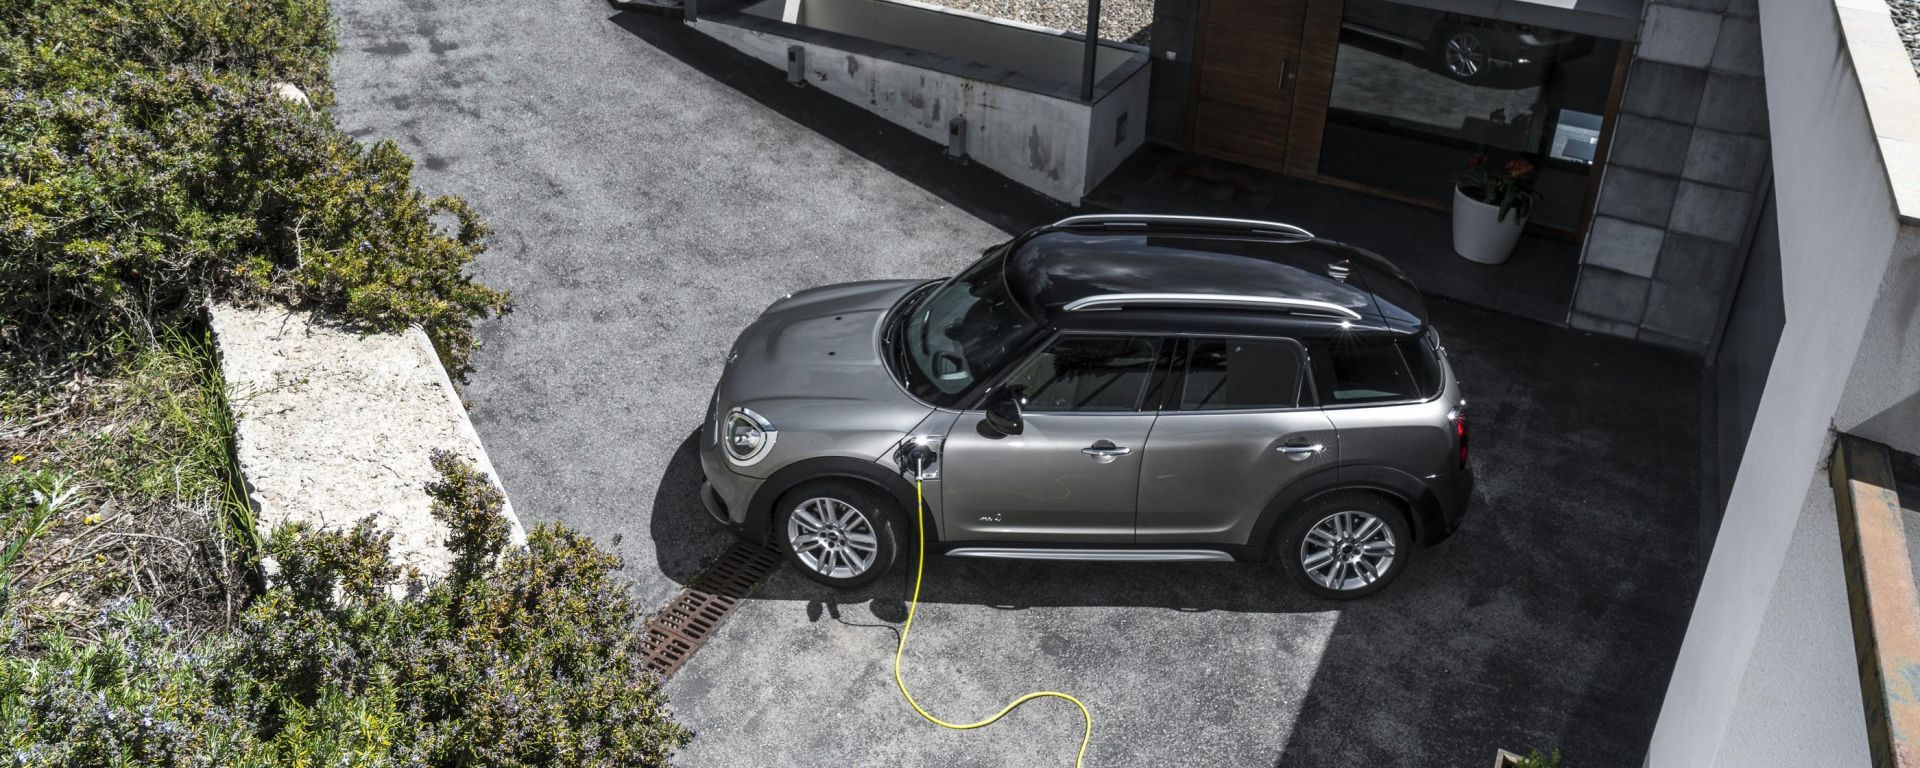 Mini Cooper S E Countryman ALL4: la Mini ibrida plug-in